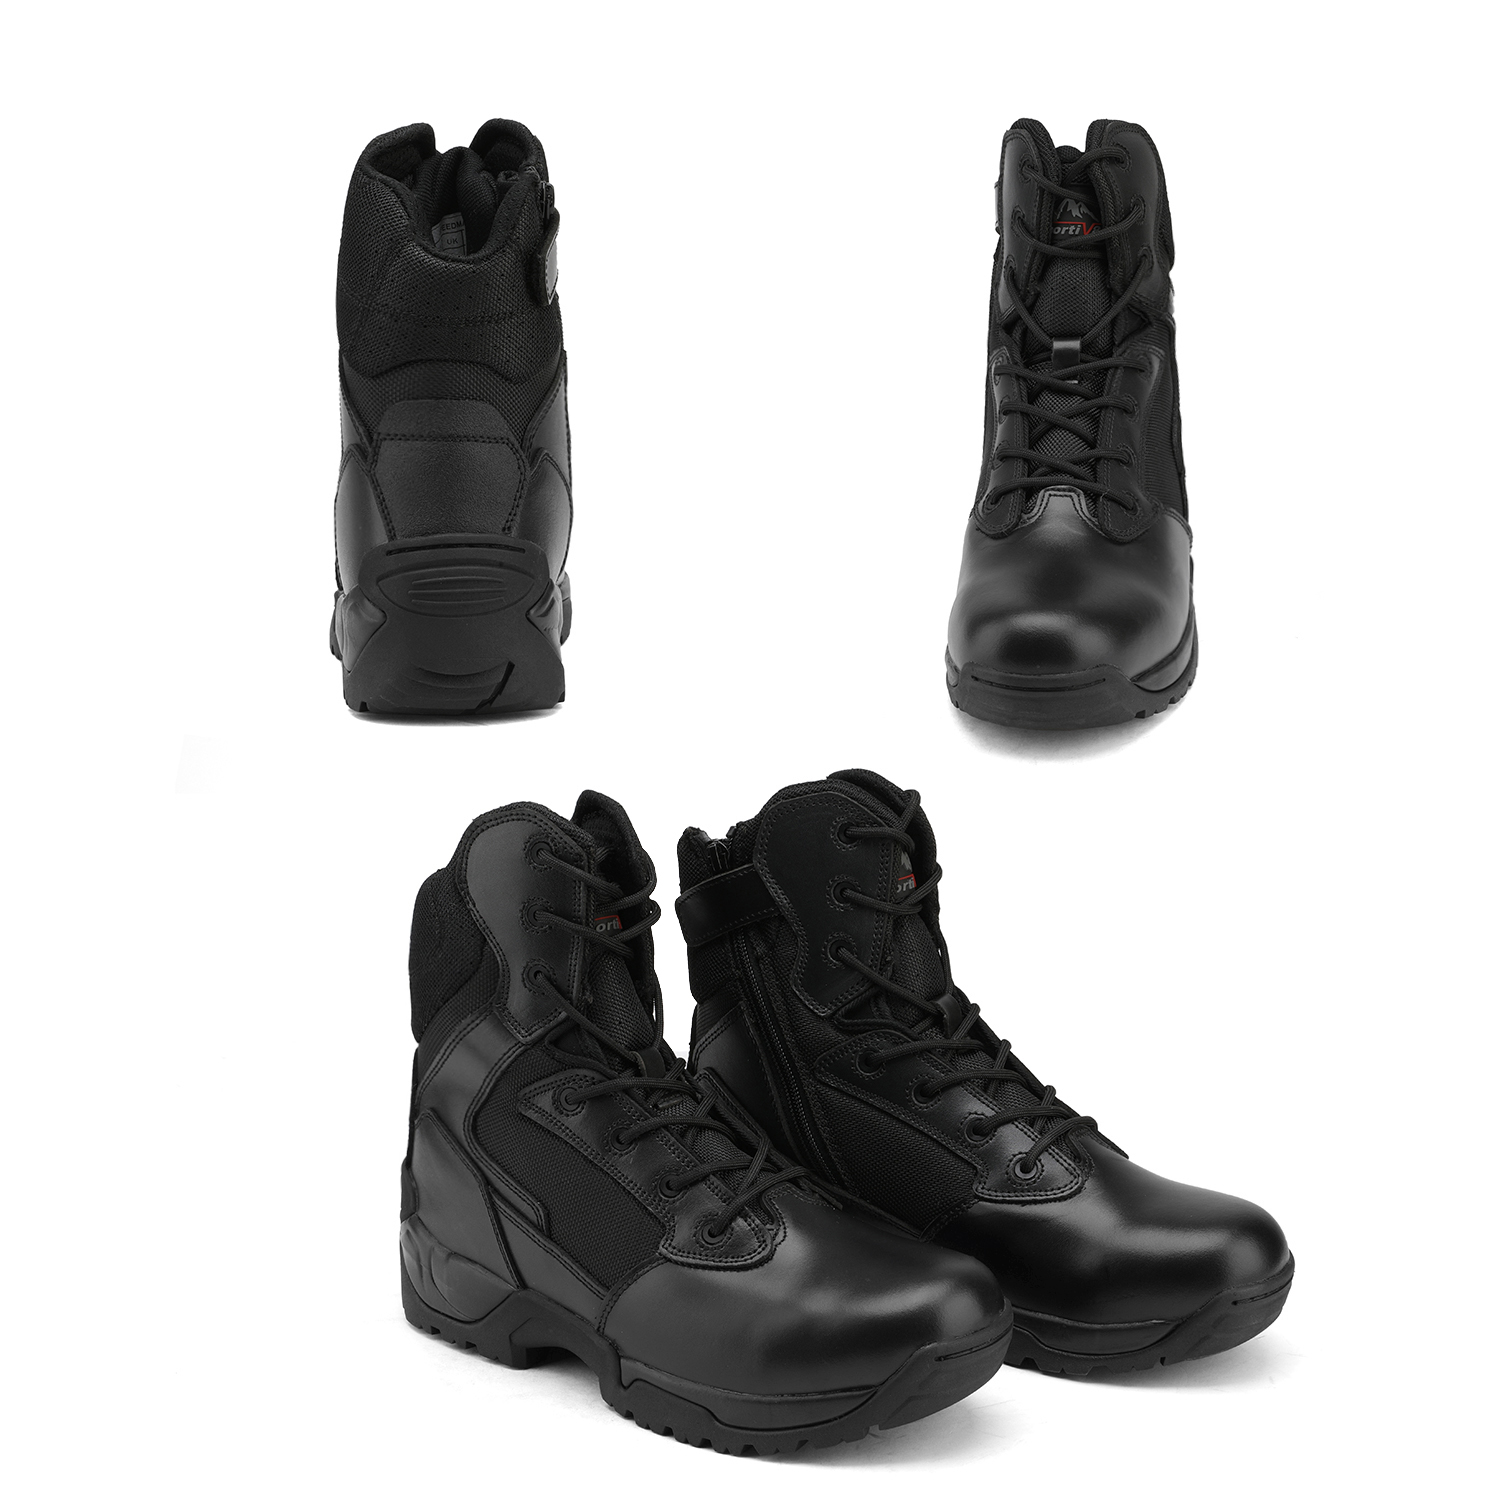 Men-039-s-Military-Tactical-Work-Boots-Hiking-Motorcycle-Combat-Bootie-New thumbnail 22